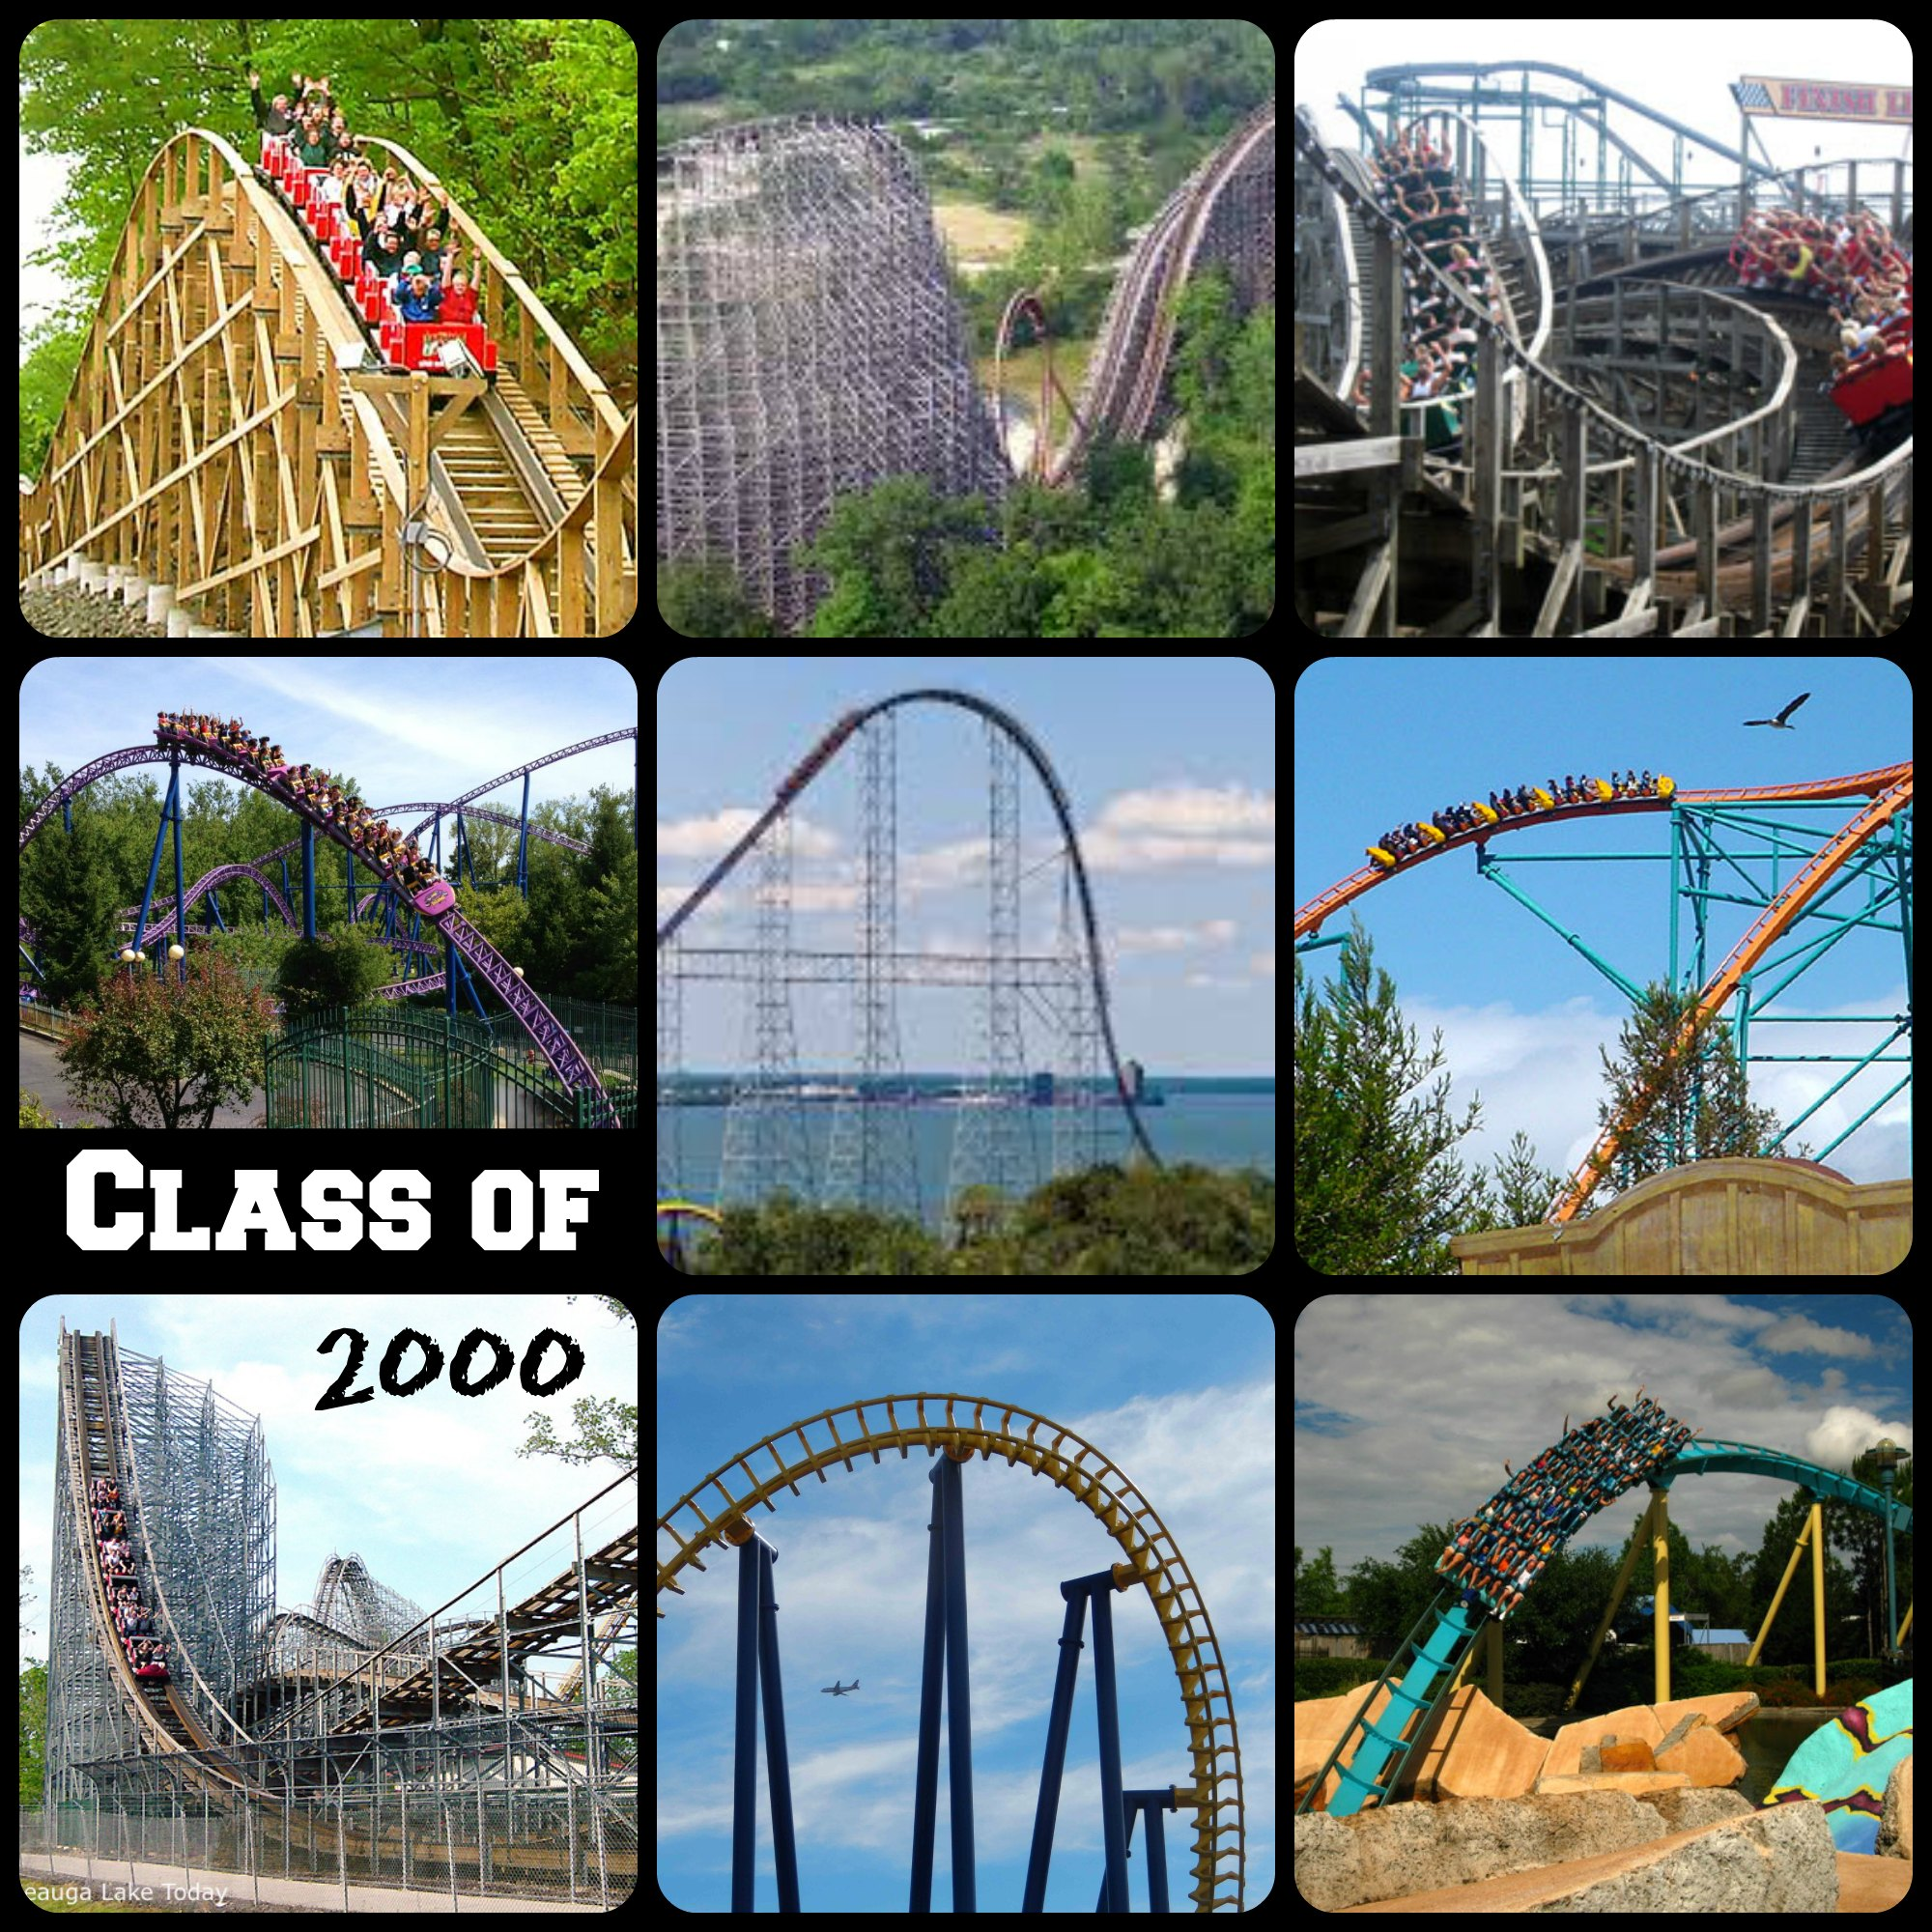 top 5 best class of new roller coasters coaster101